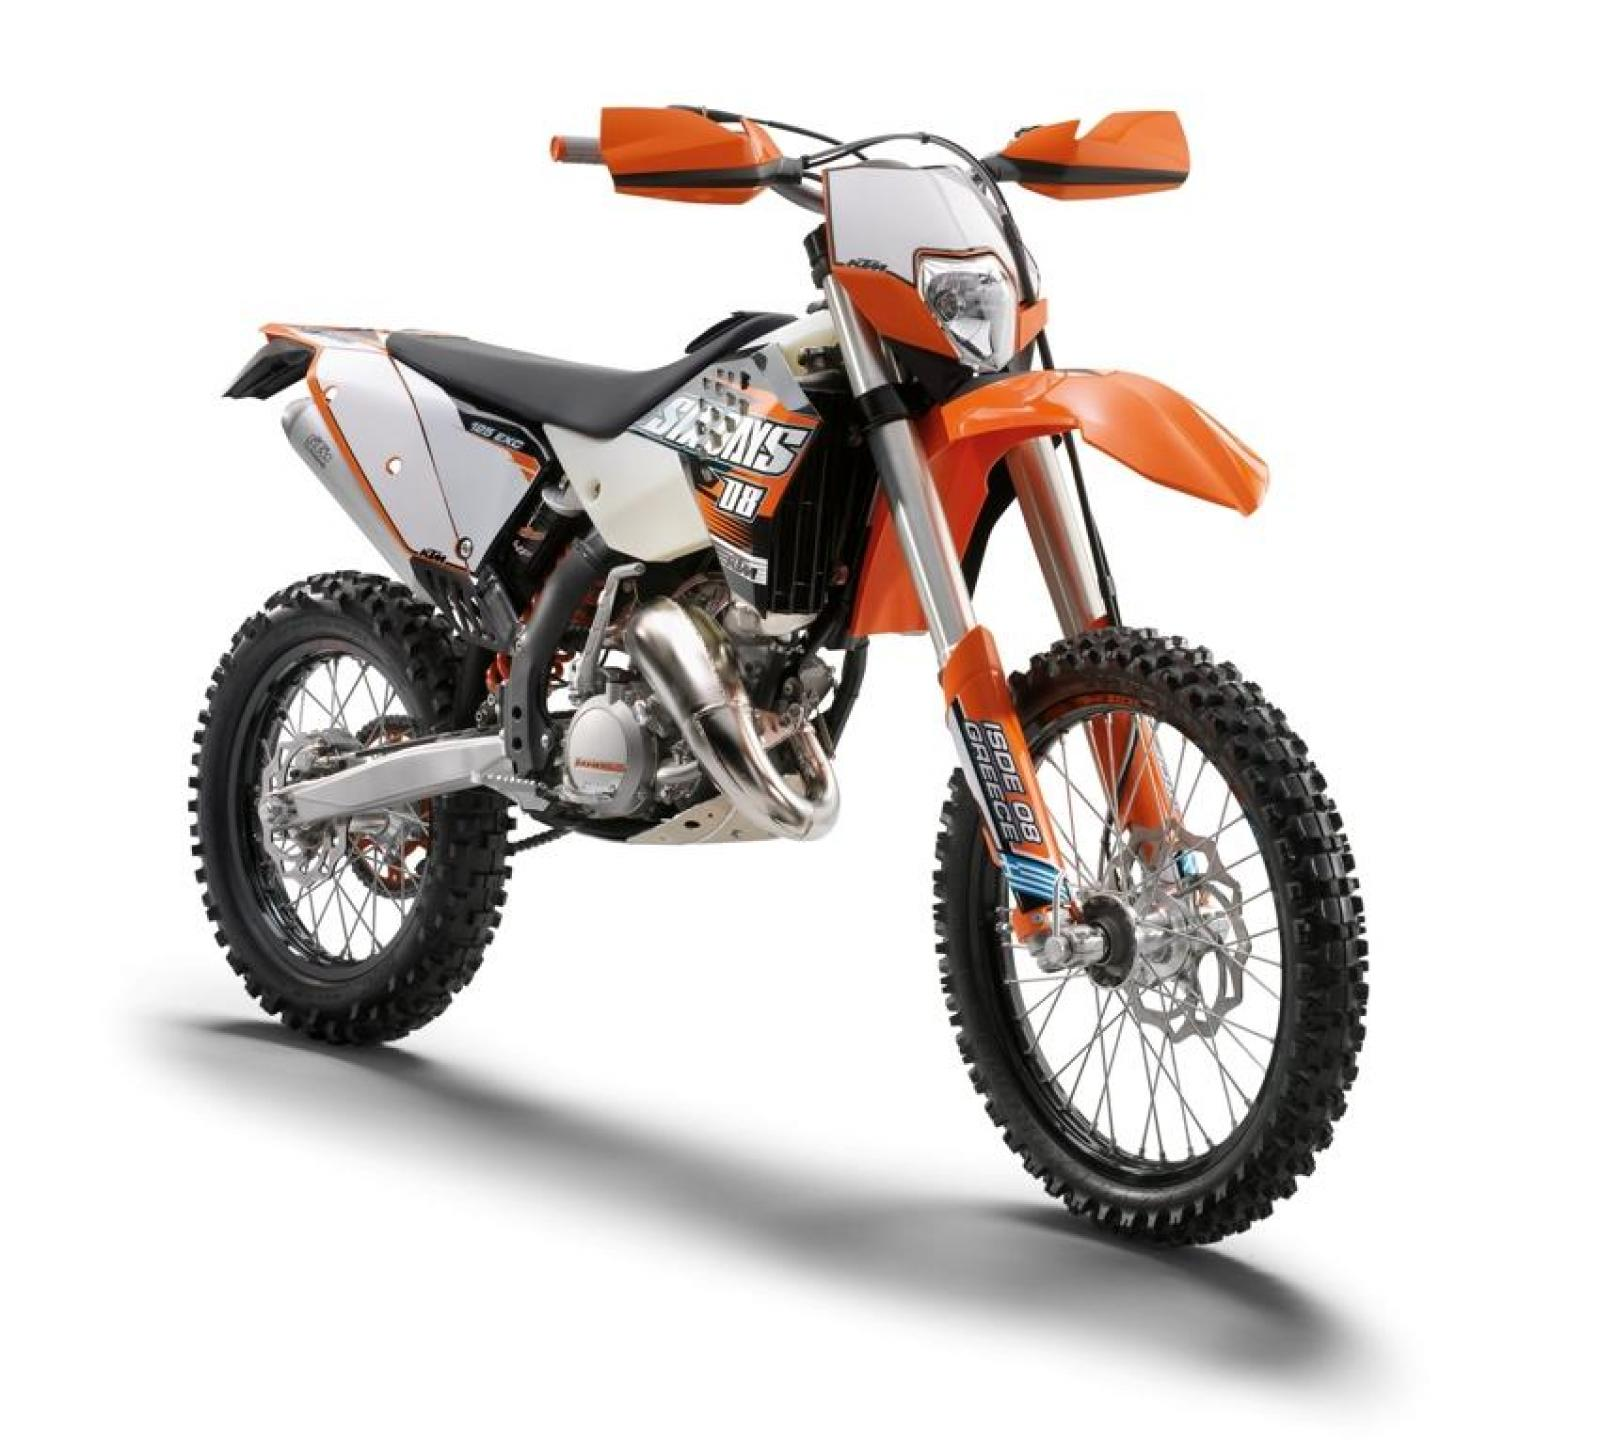 2009 ktm 125 exc six days moto zombdrive com. Black Bedroom Furniture Sets. Home Design Ideas